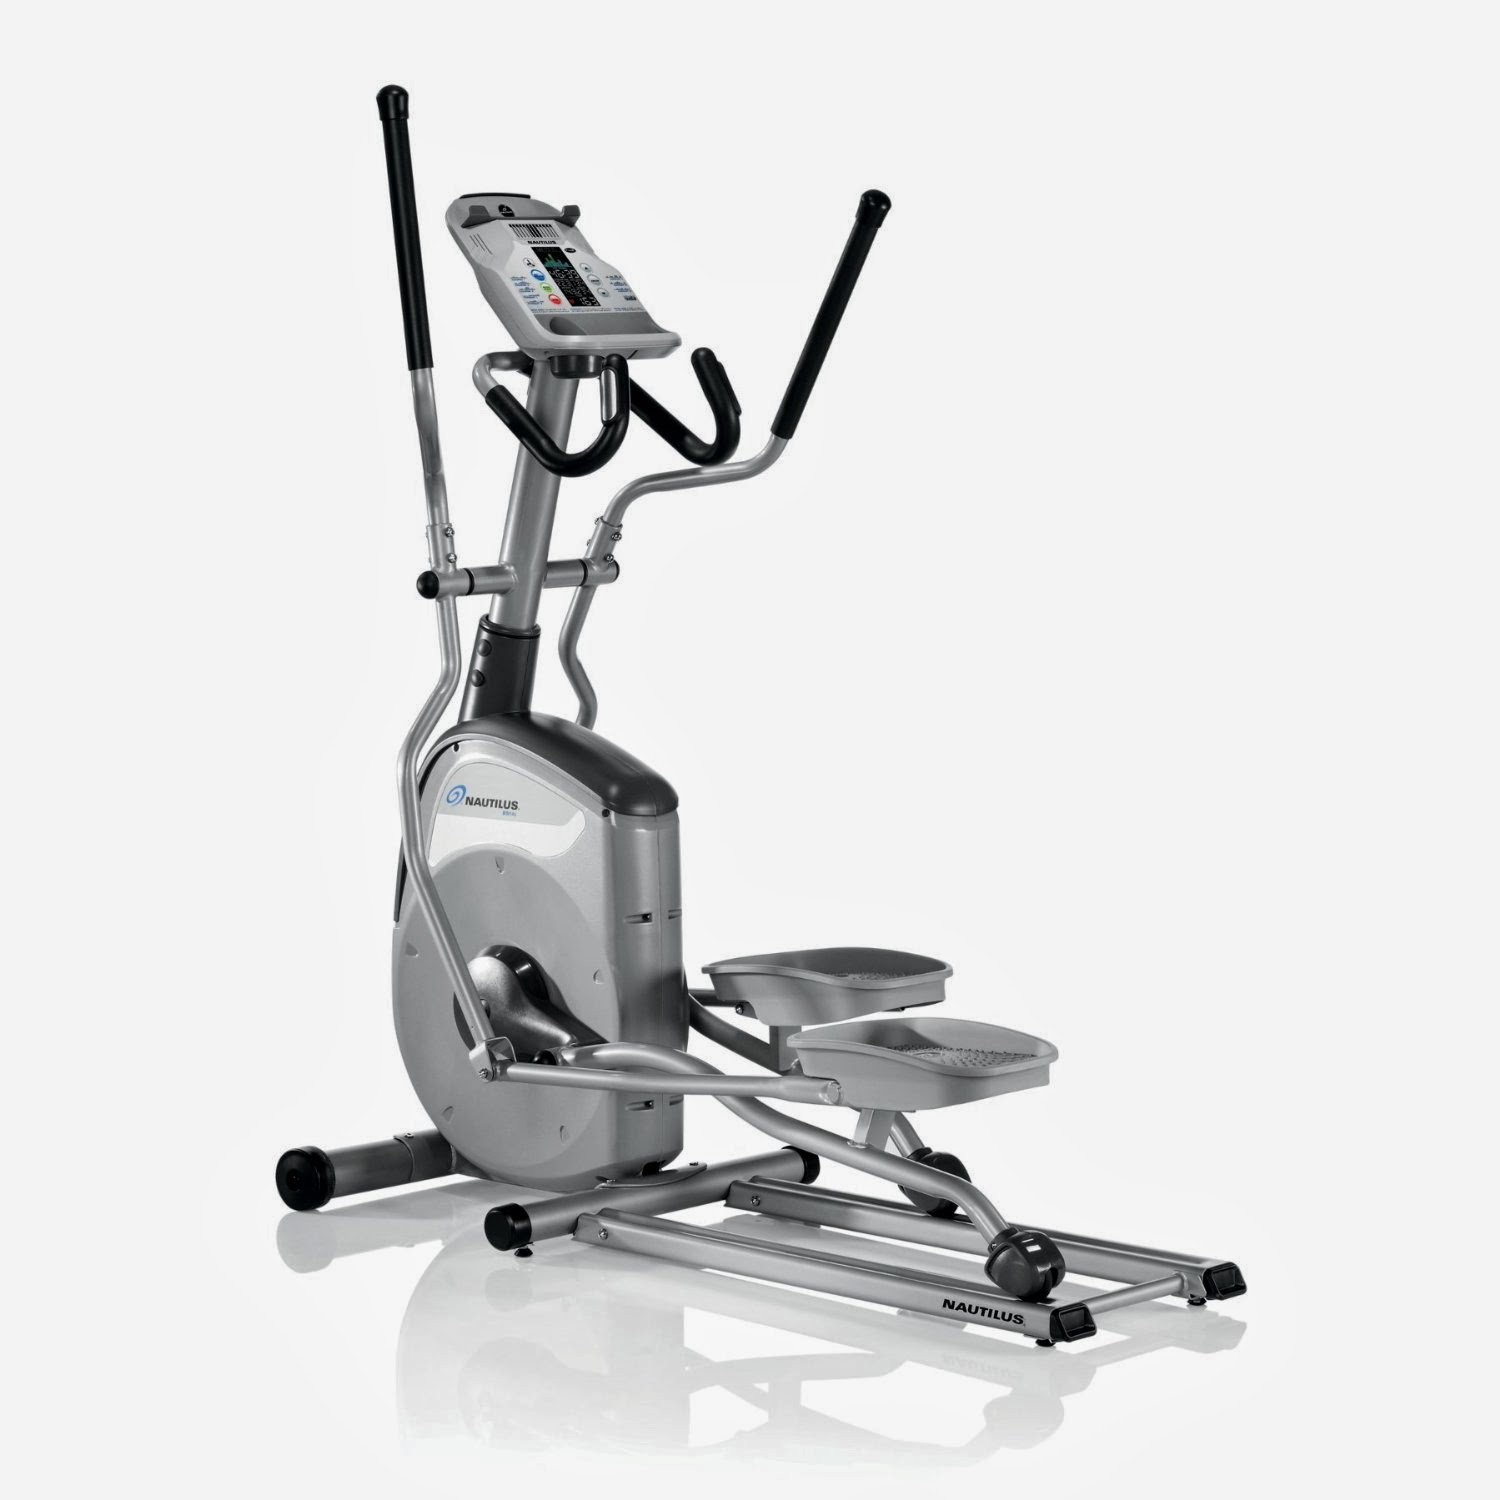 Nautilus E514c Elliptical Trainer, review of features, compact front drive